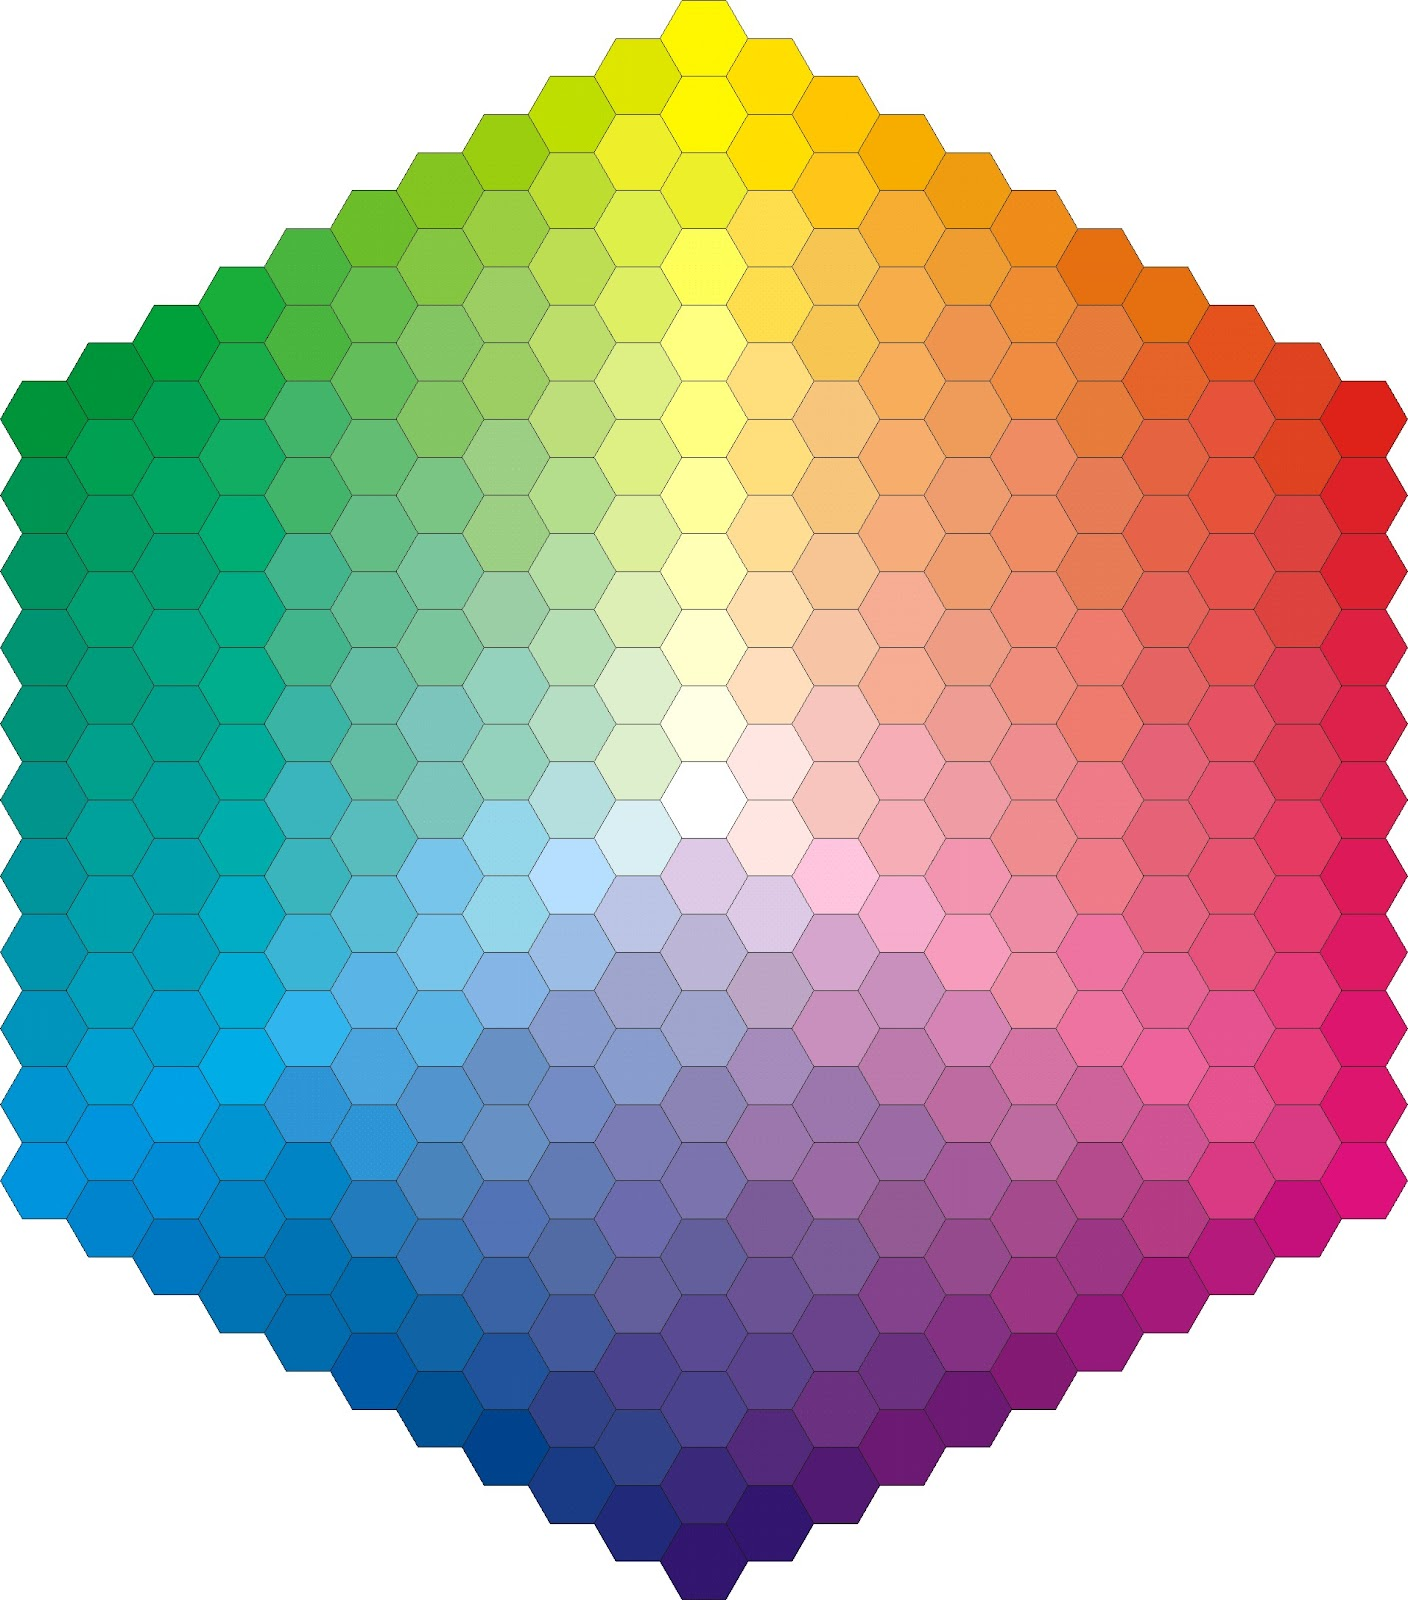 Colour hexagon